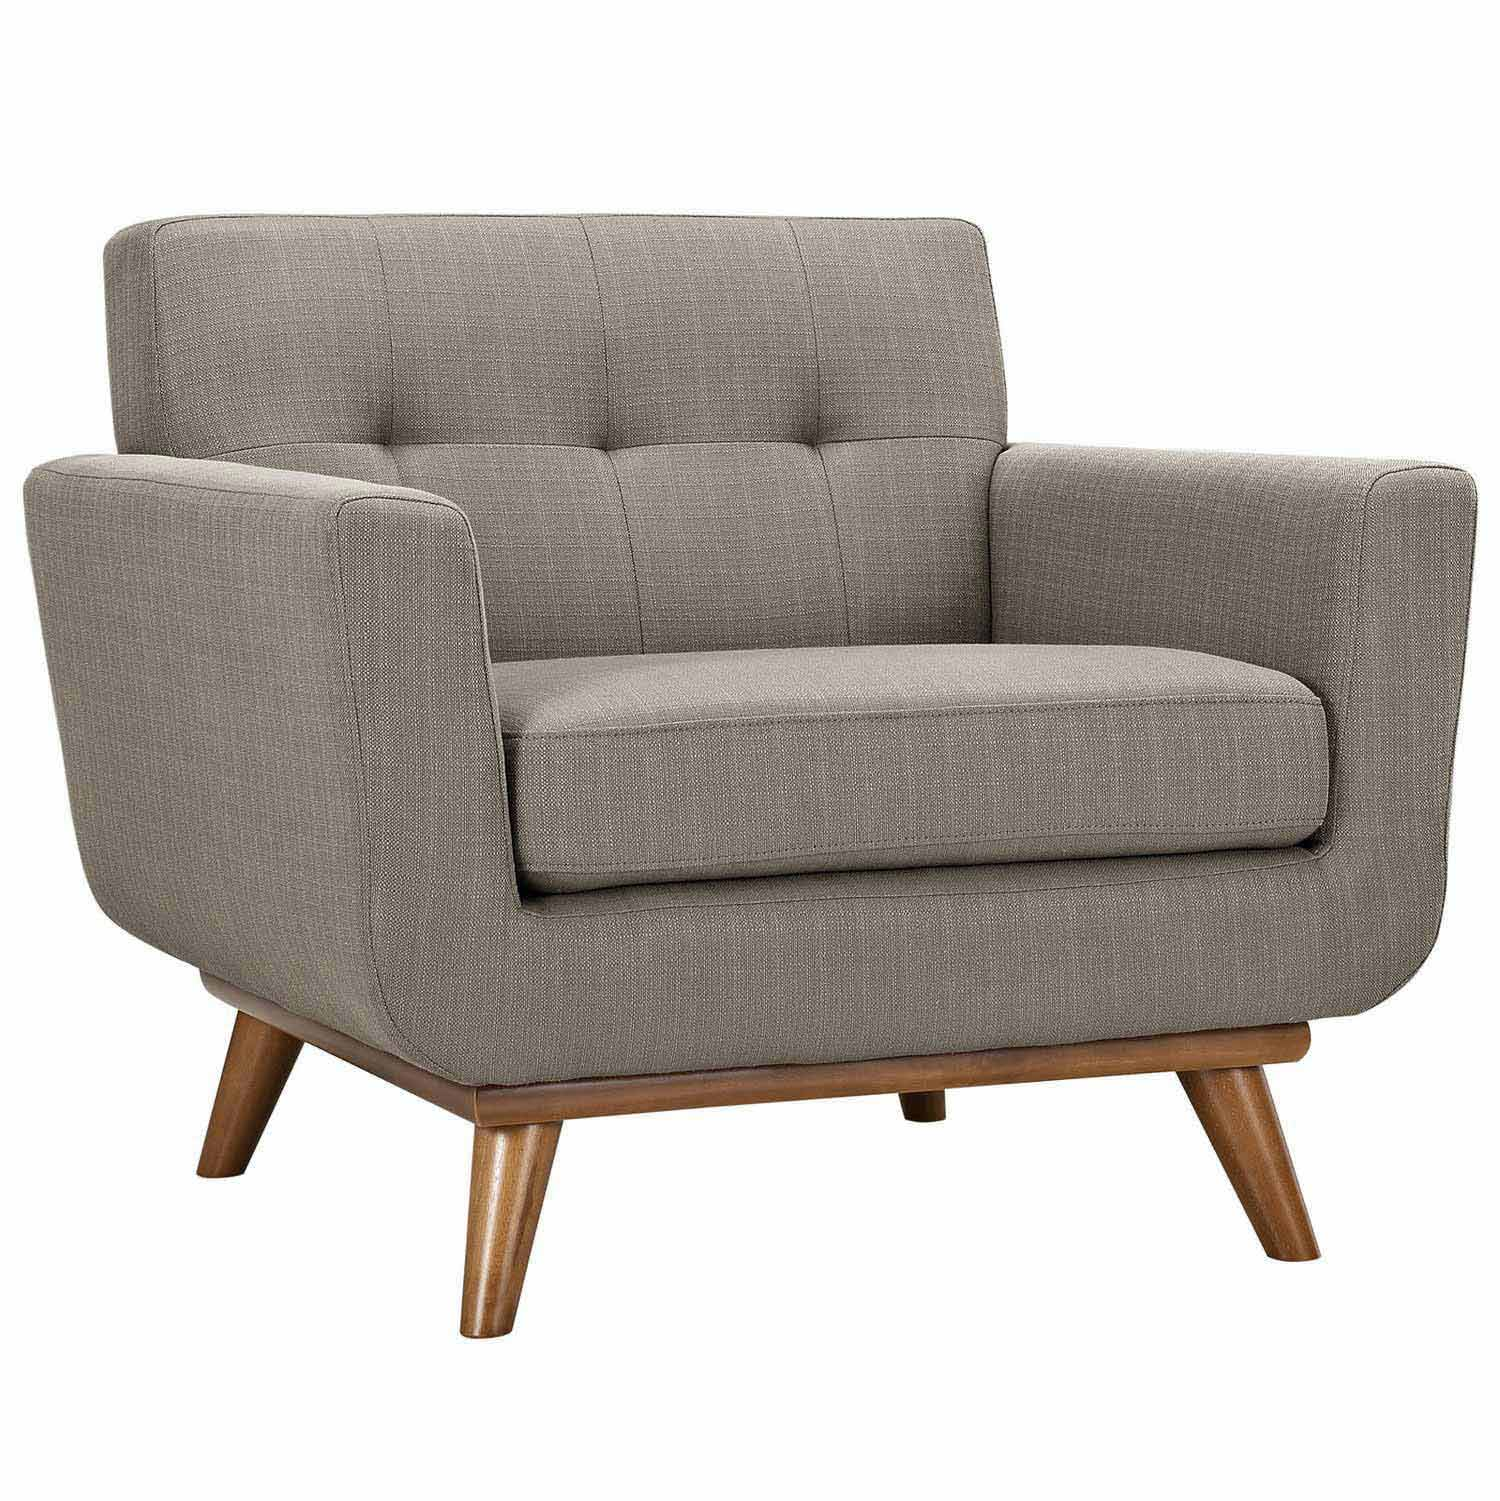 Modway Engage Armchair and Loveseat Set of 2 - Granite